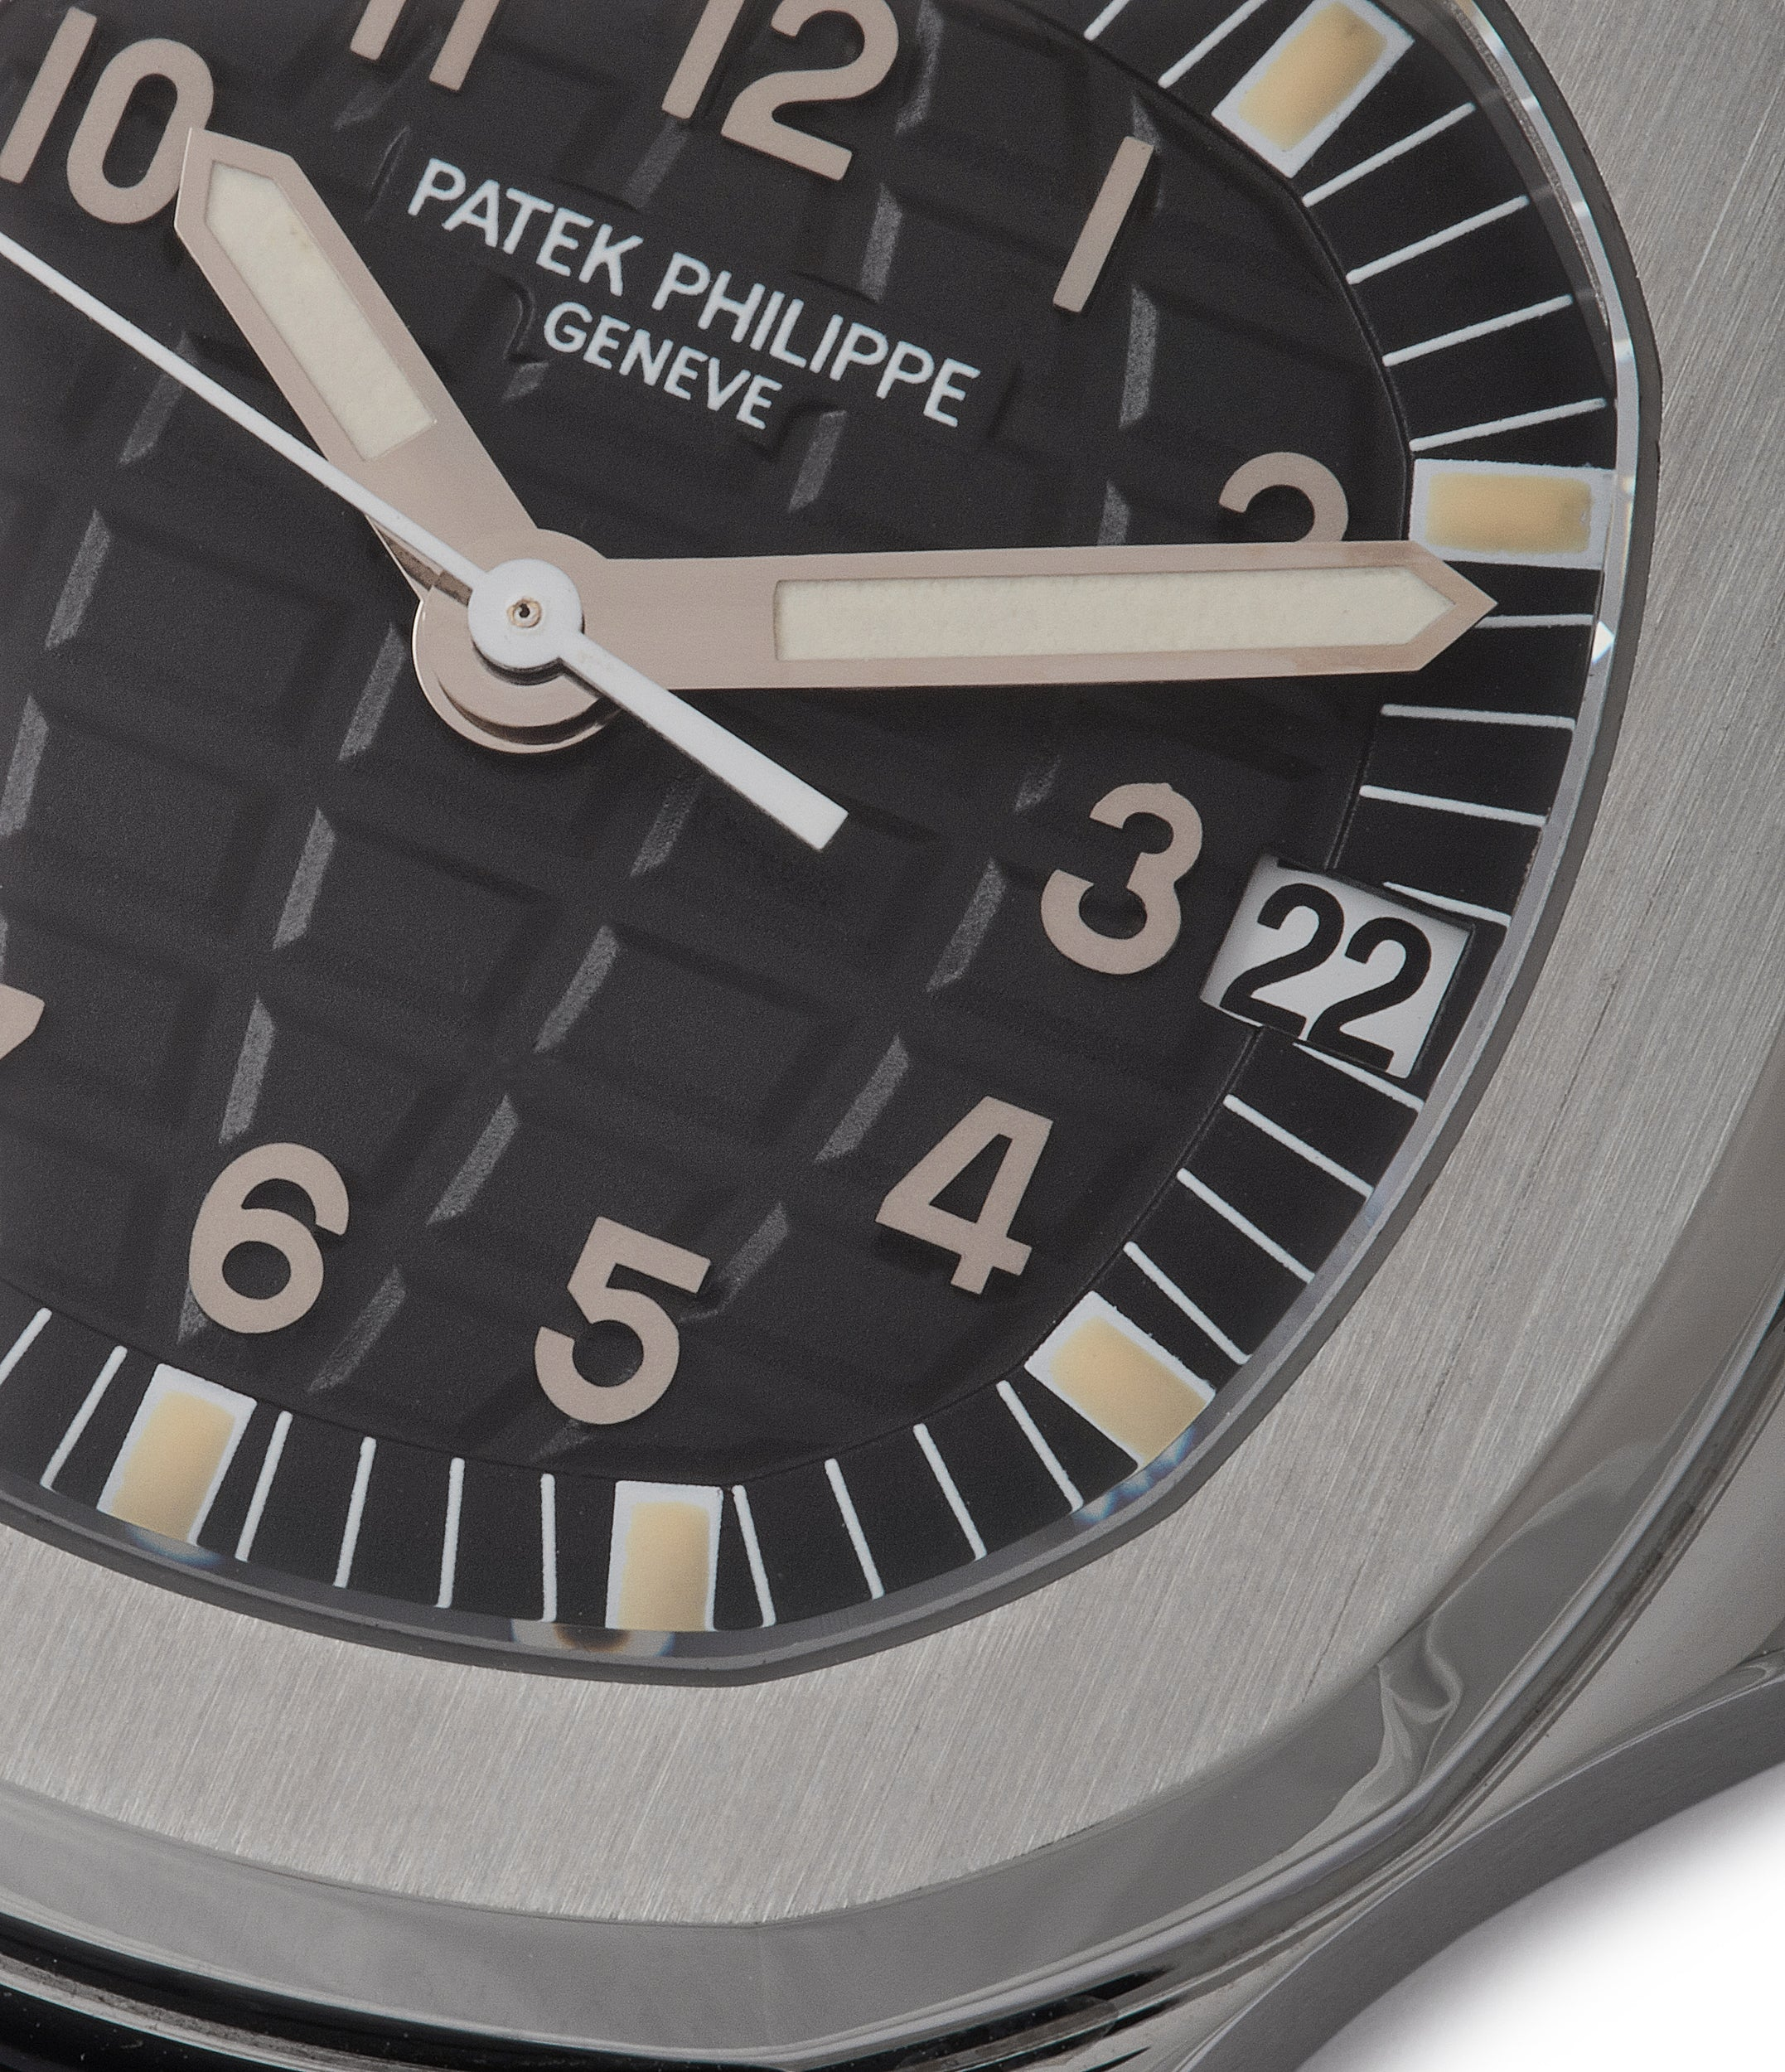 shop Patek Philippe Aquanaut 5066A-001 steel sport watch rubber strap for sale online at A Colleted Man London UK specialist of rare watches